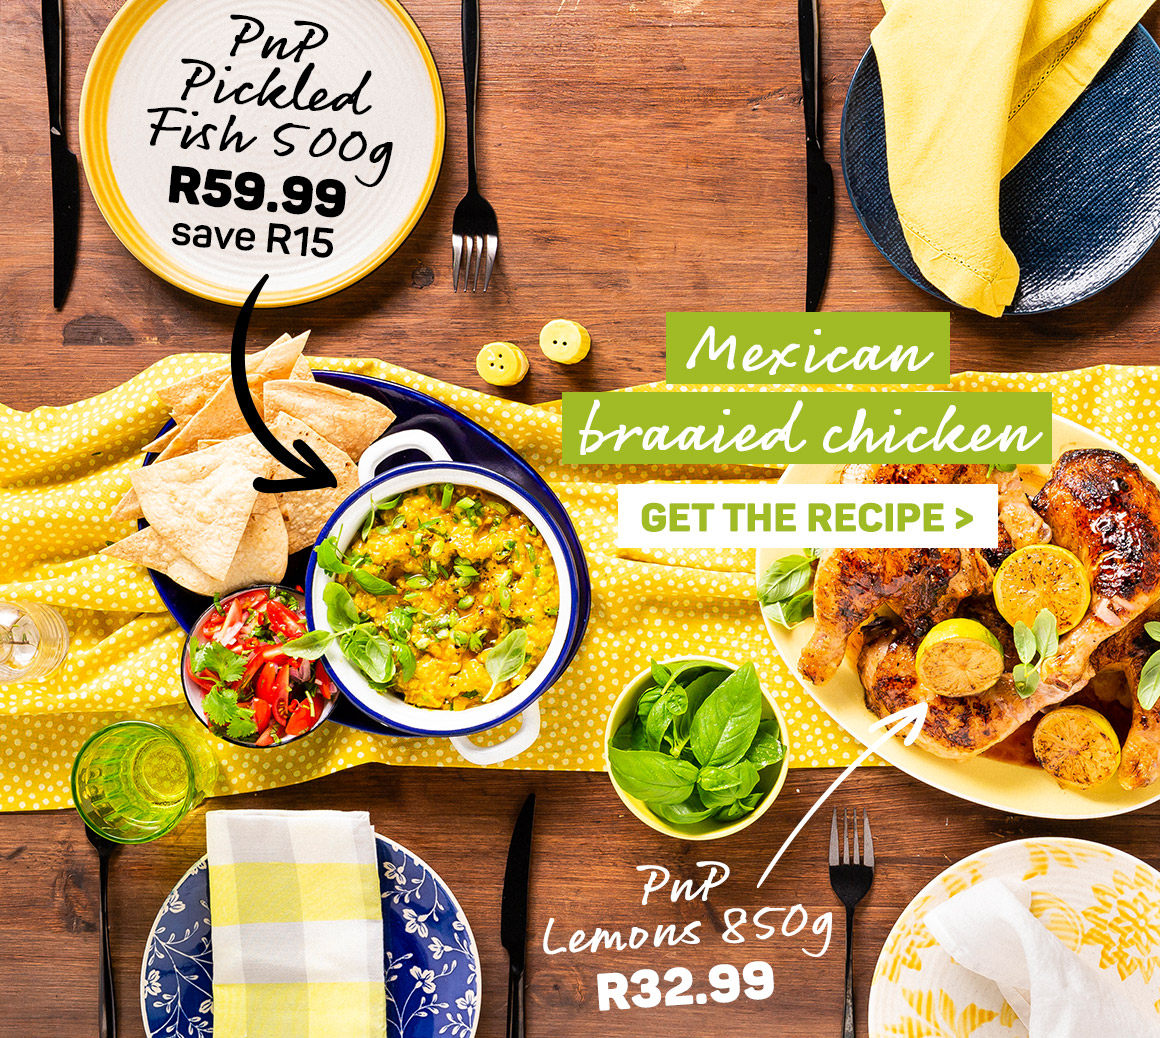 Get the Mexican braaied chicken recipe.